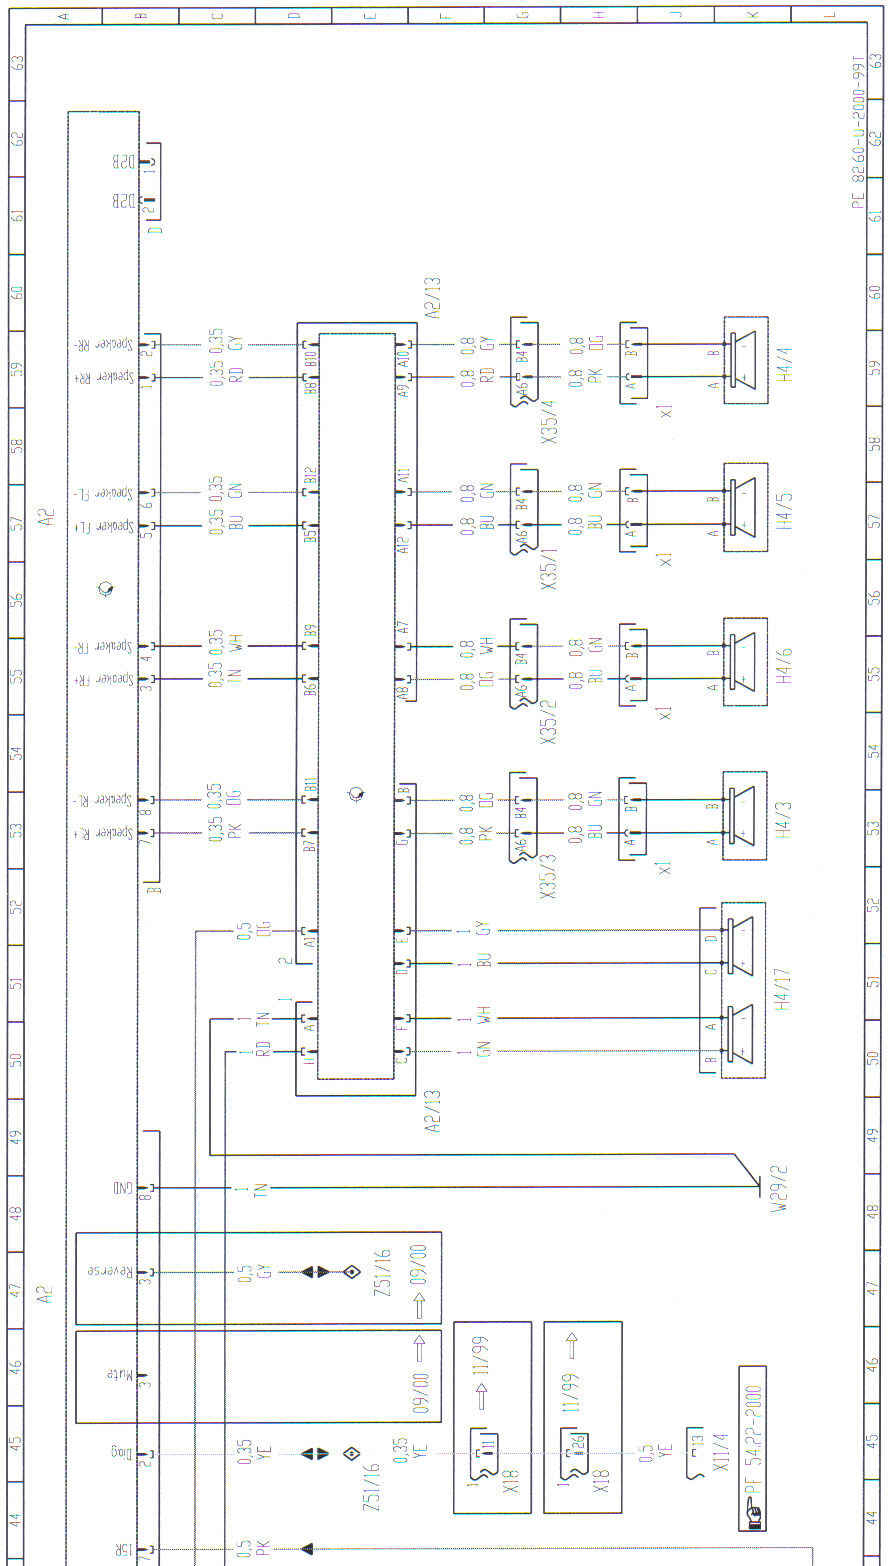 2002 Ml320 Bose Amp Wiring Diagram Wire Center Surround System 98 Pinout Of Radio Rh Justanswer Com